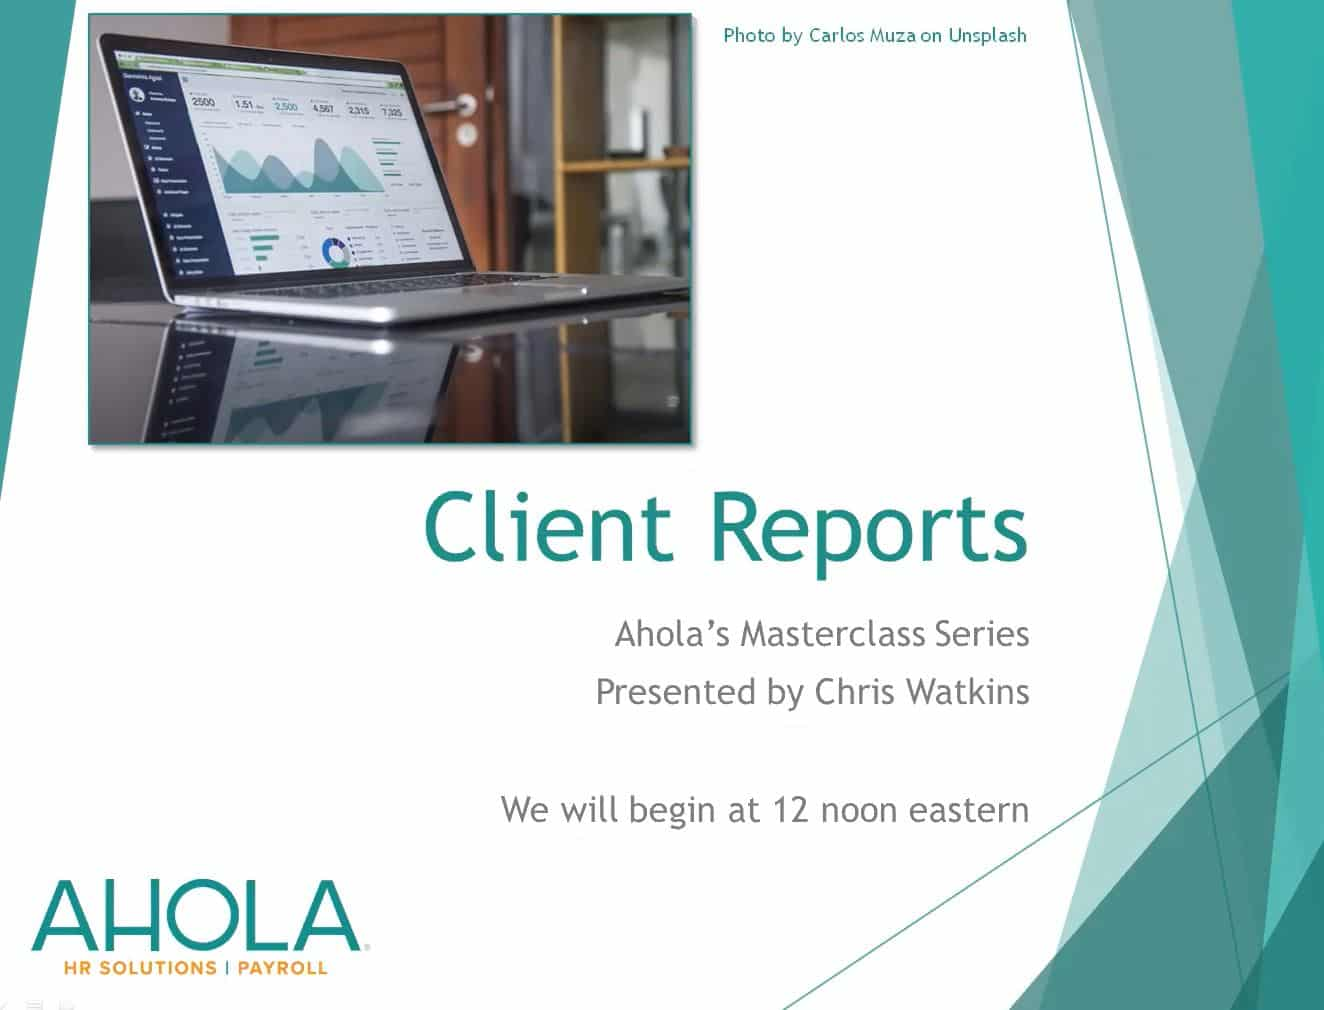 Ahola's Masterclass Series: Client Reports